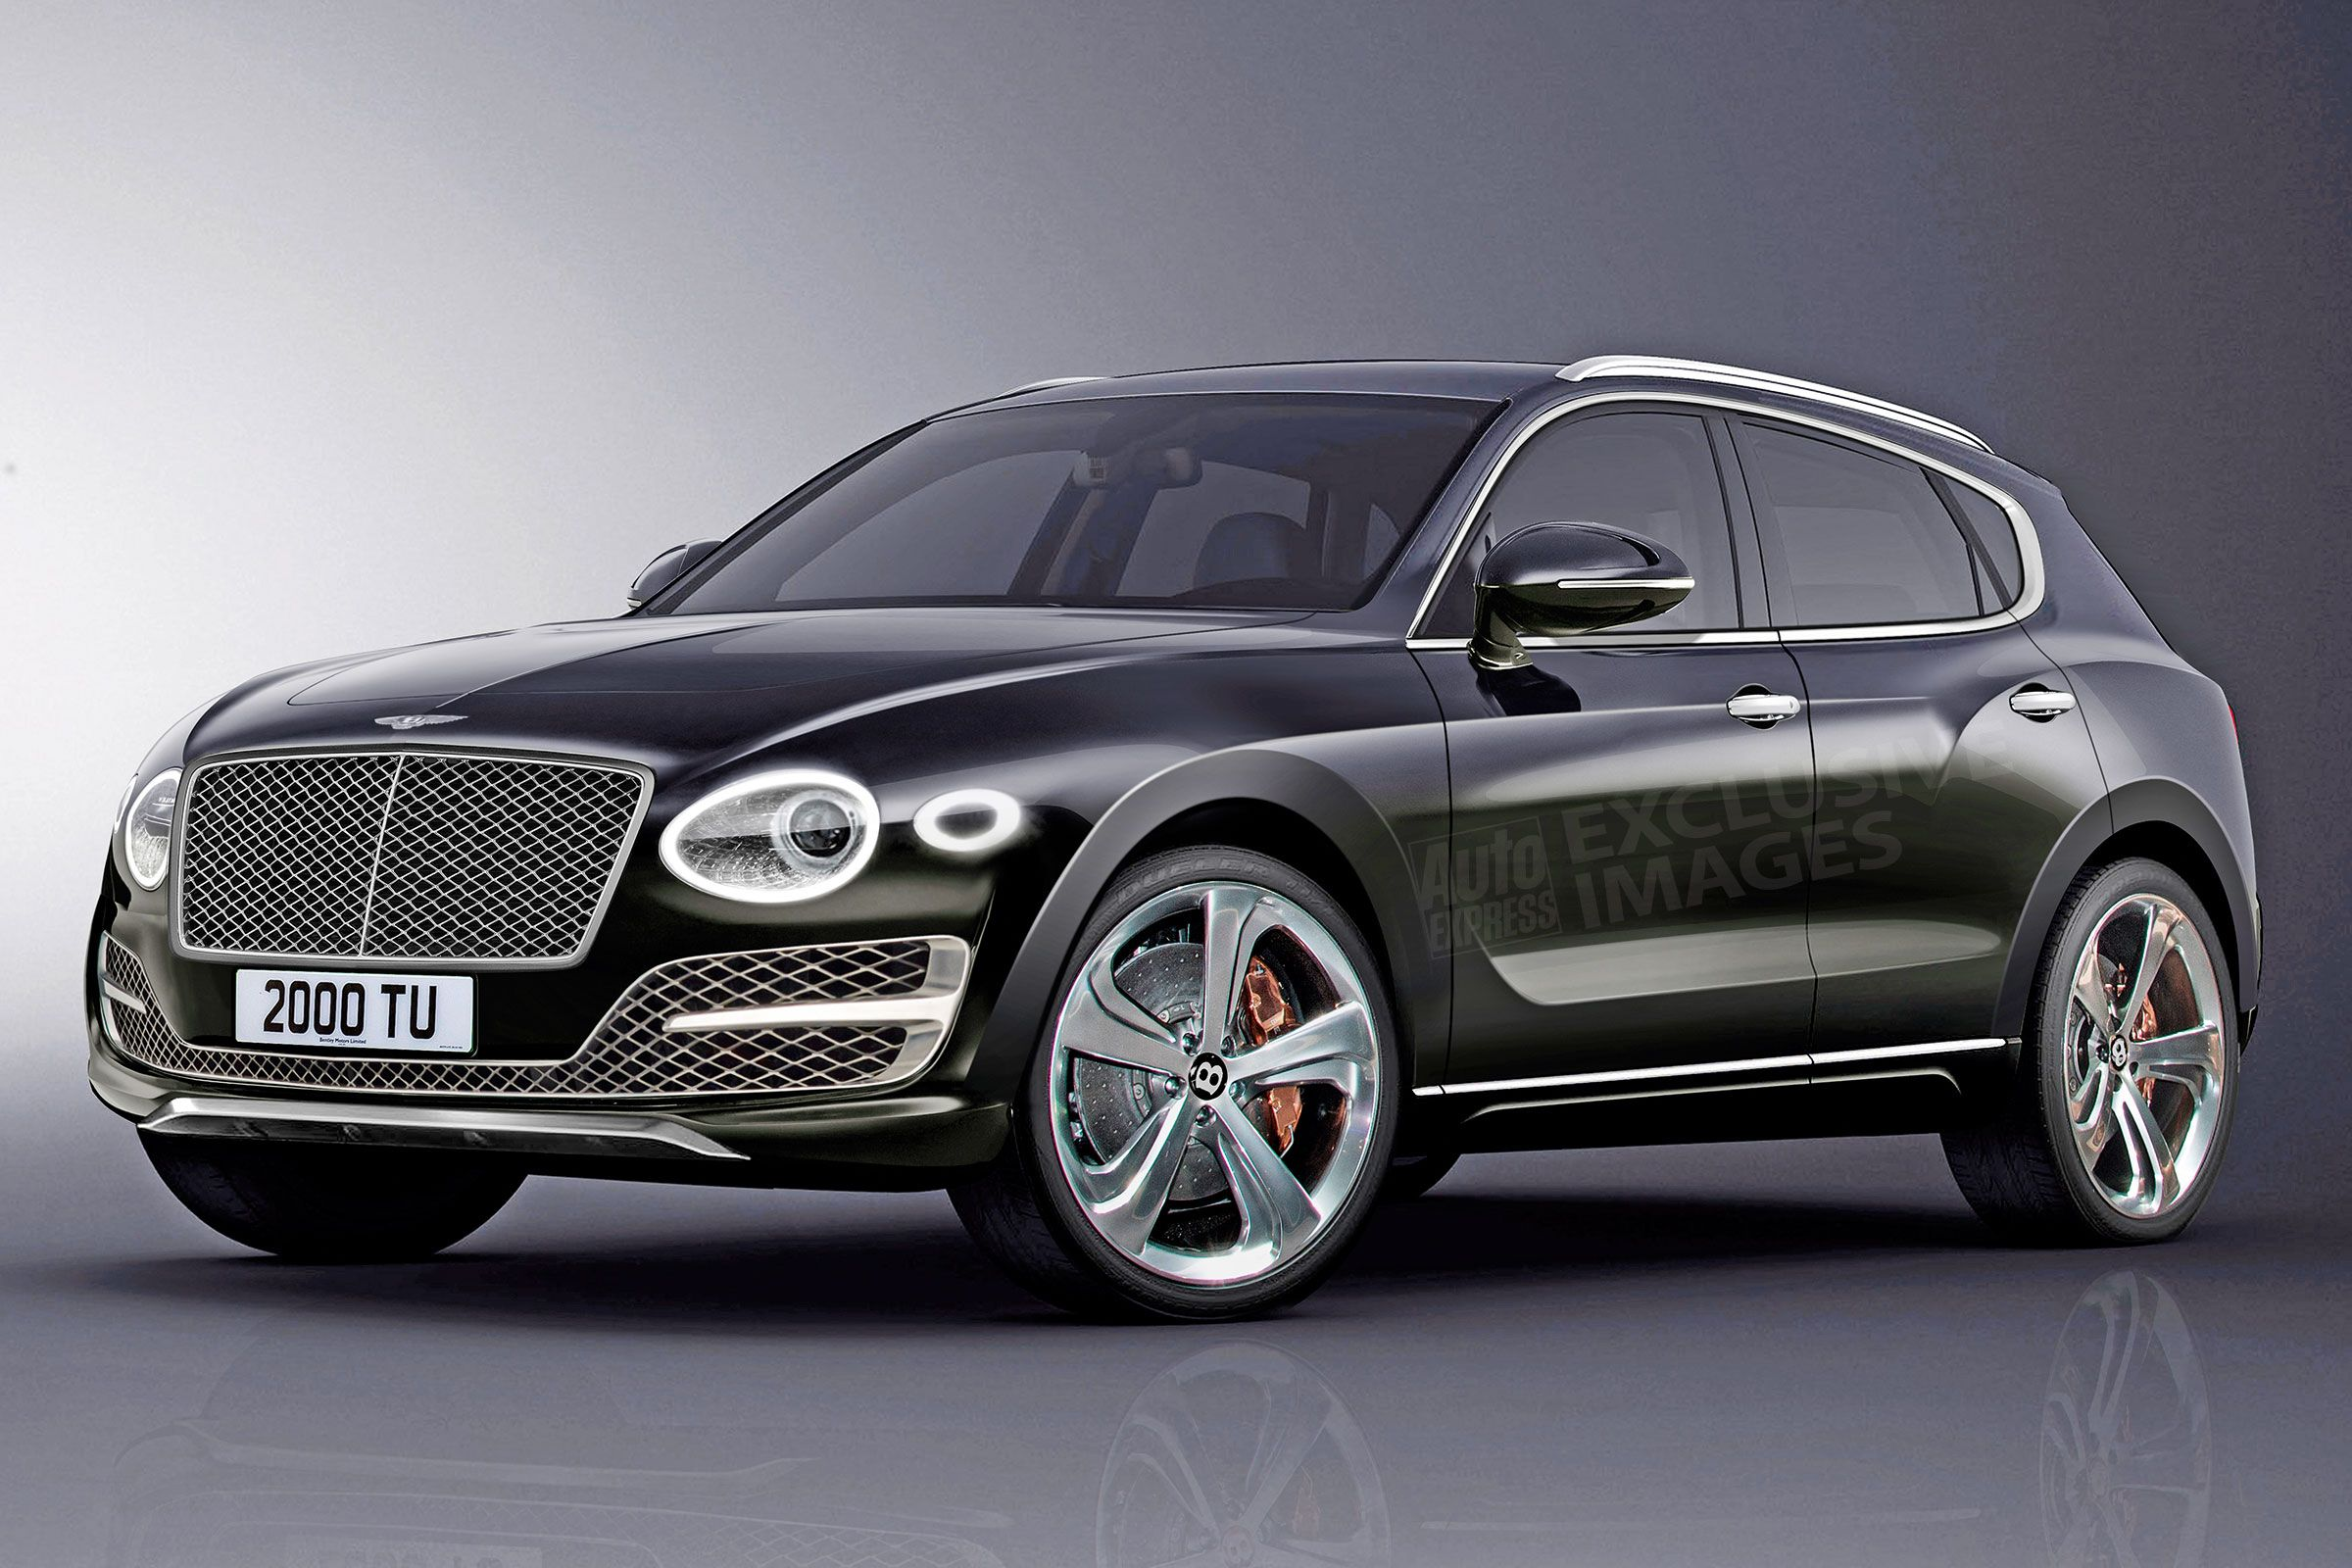 specs new ratings review h bentley mulsanne car jeep prices and overview connection photos the